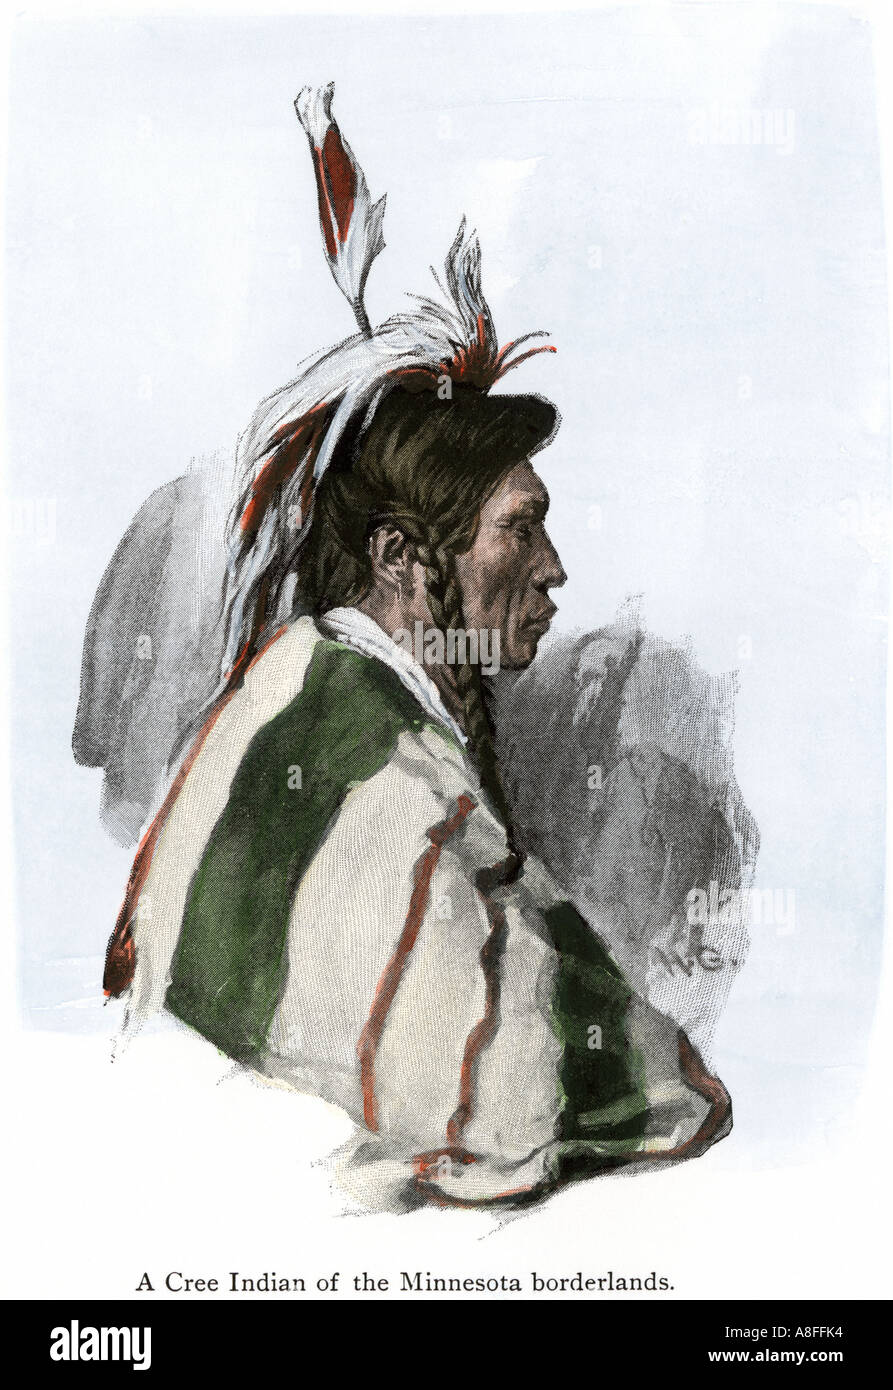 Cree Indian of the Minnesota and Canada borderlands 1800s. Hand-colored halftone of an illustration - Stock Image